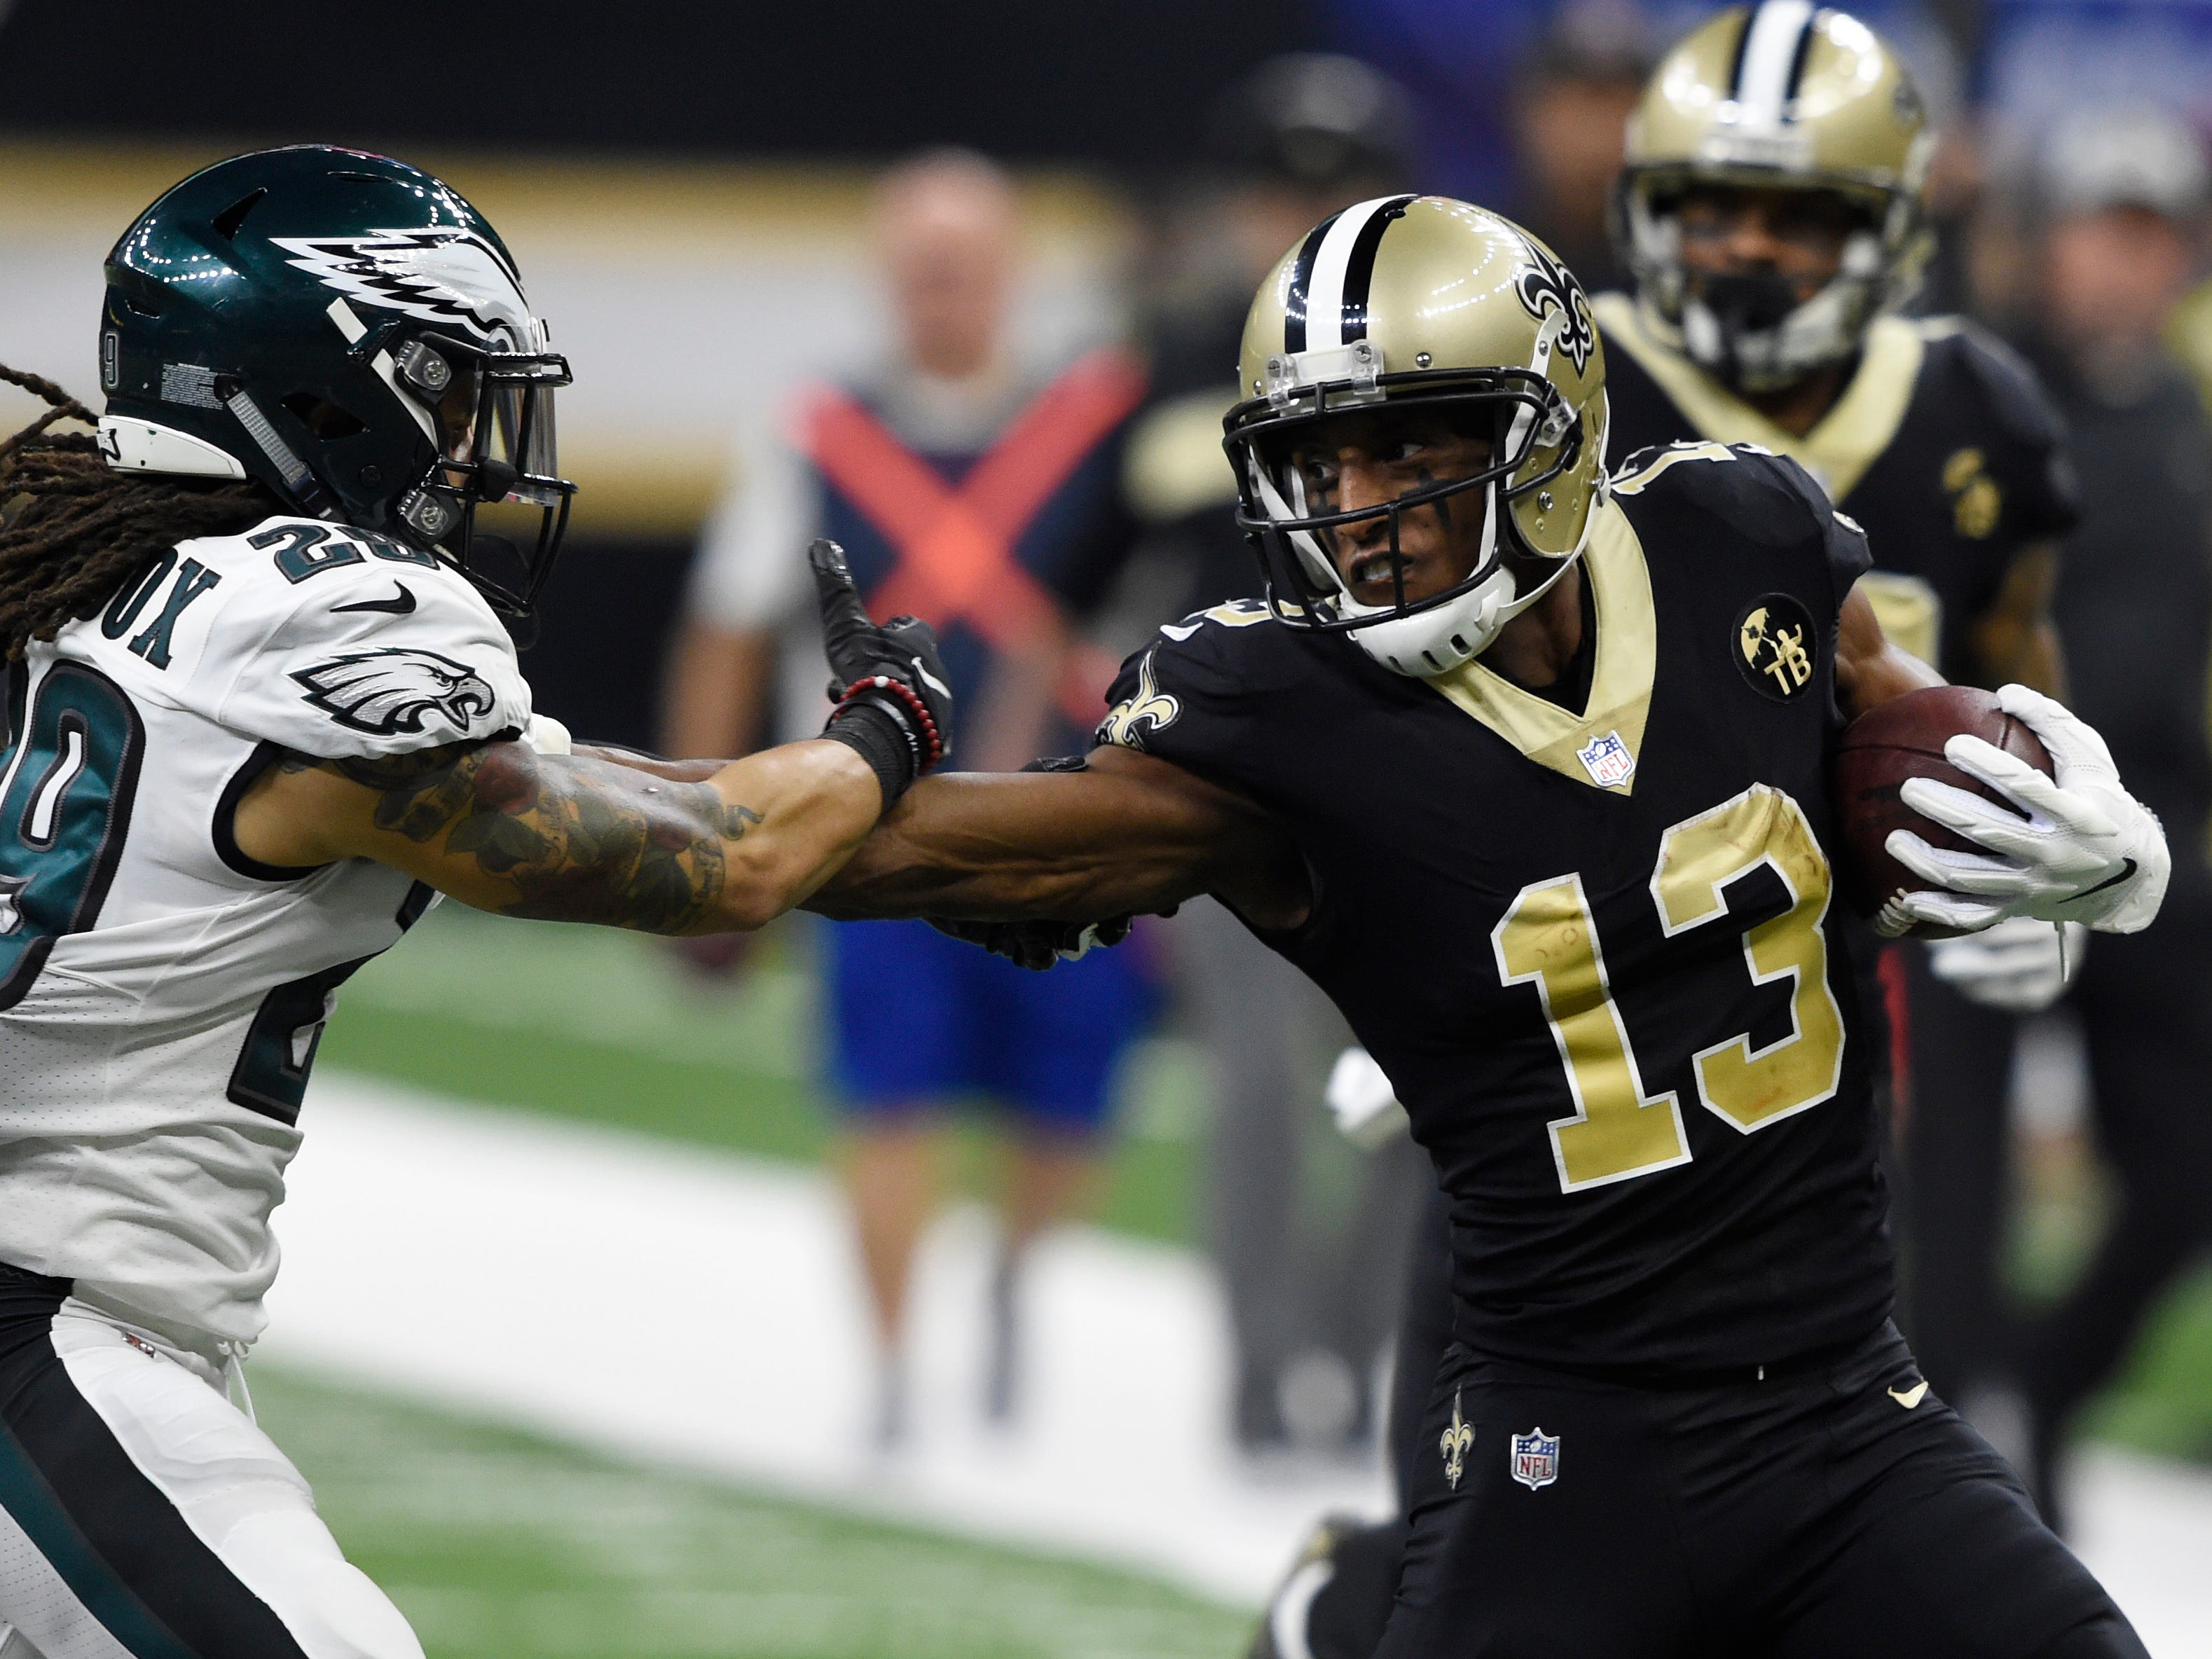 New Orleans Saints wide receiver Michael Thomas stiff arms Philadelphia Eagles free safety Avonte Maddox.